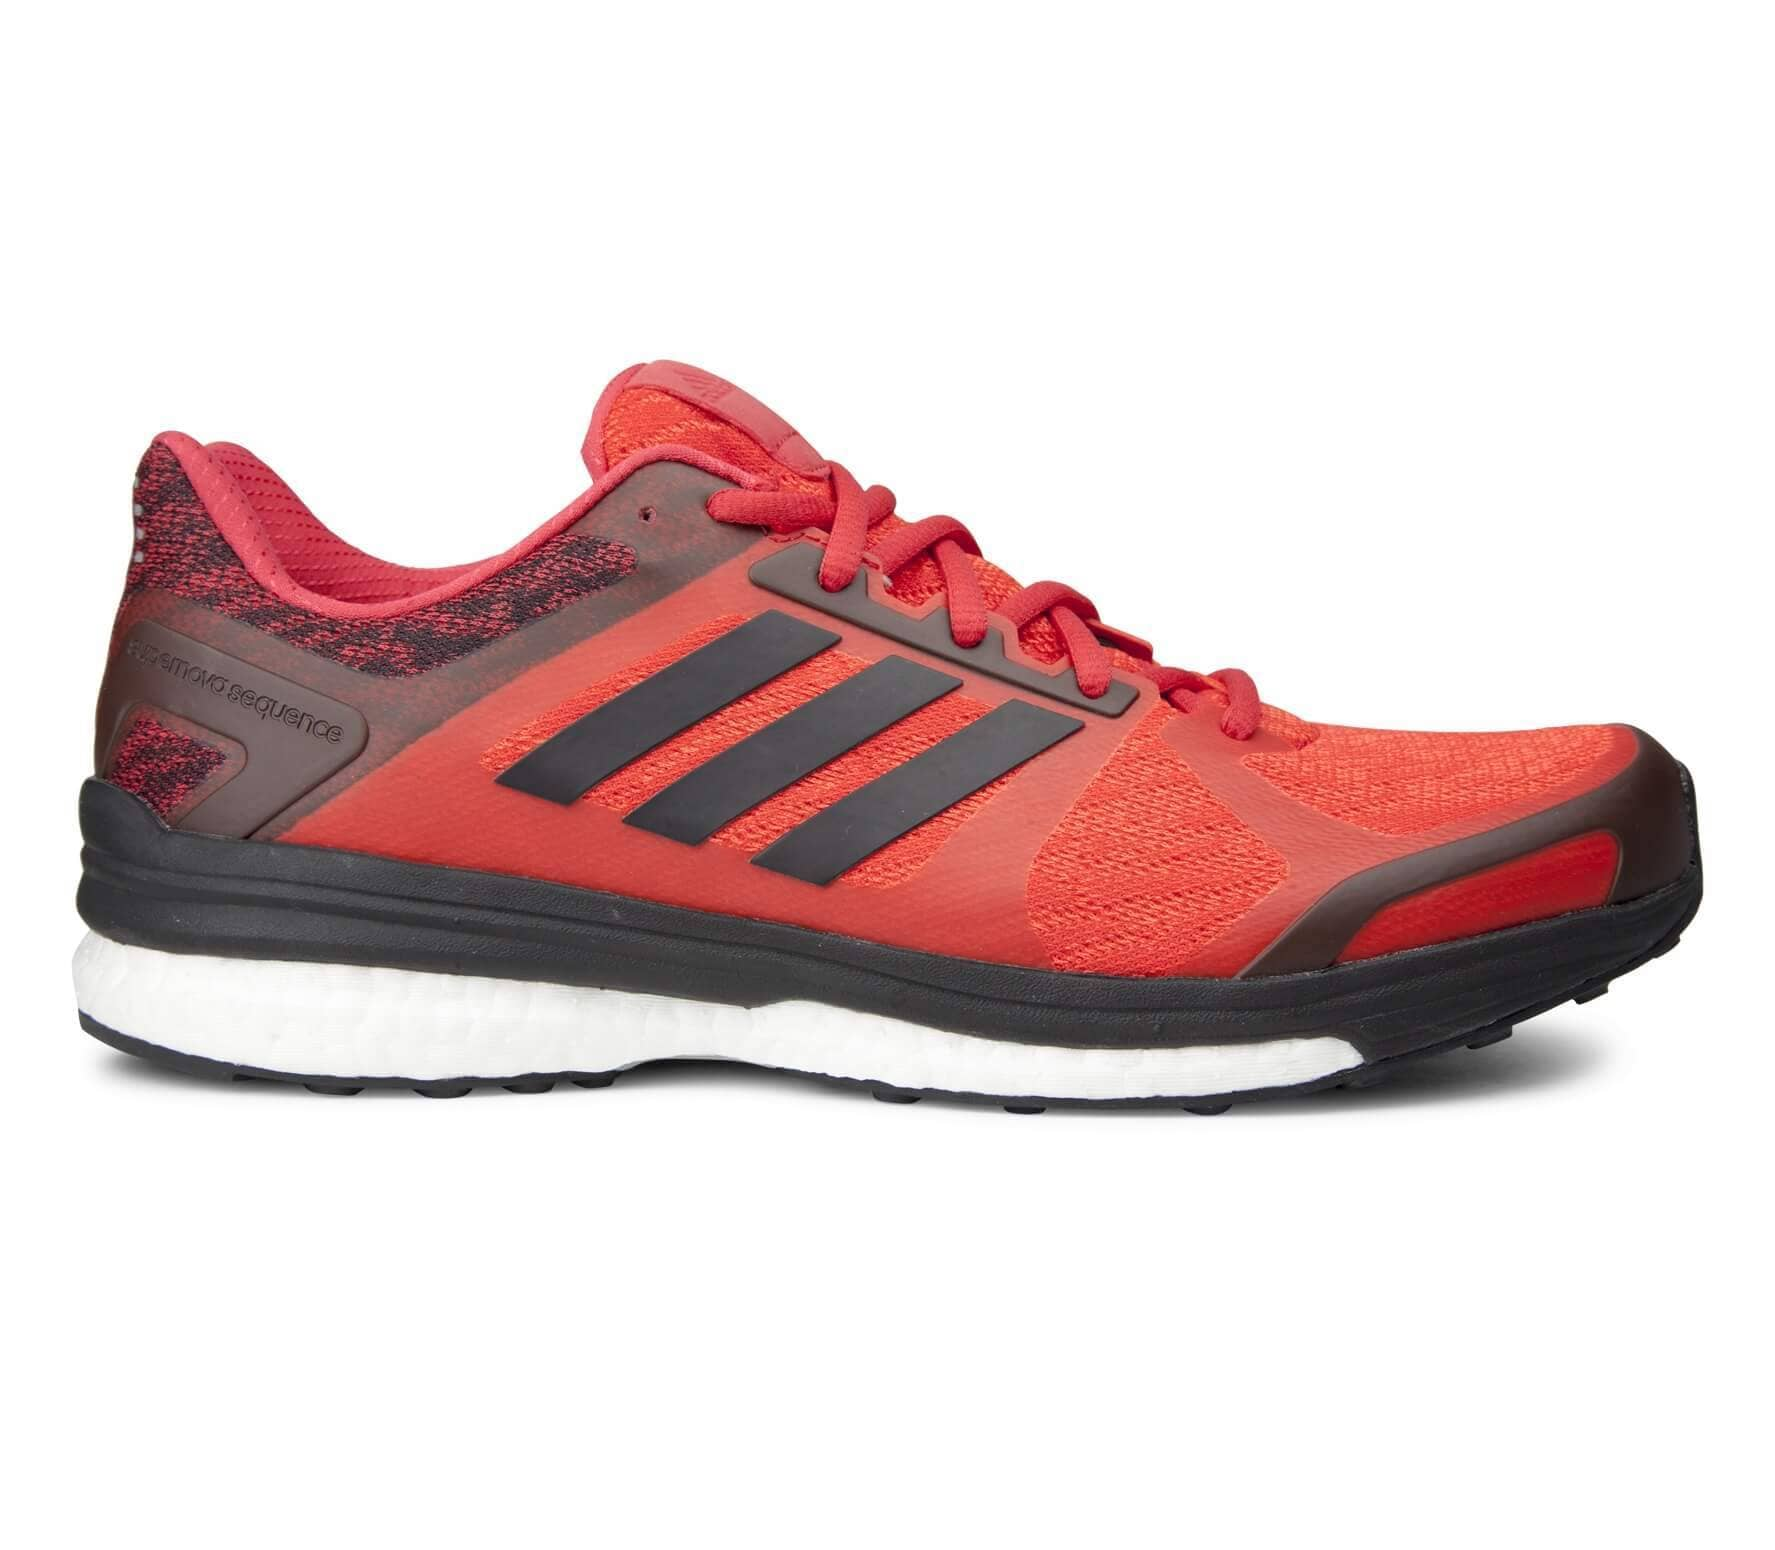 769ad4670 Adidas - Supernova Sequence 9 men s running shoes (red black) - buy ...